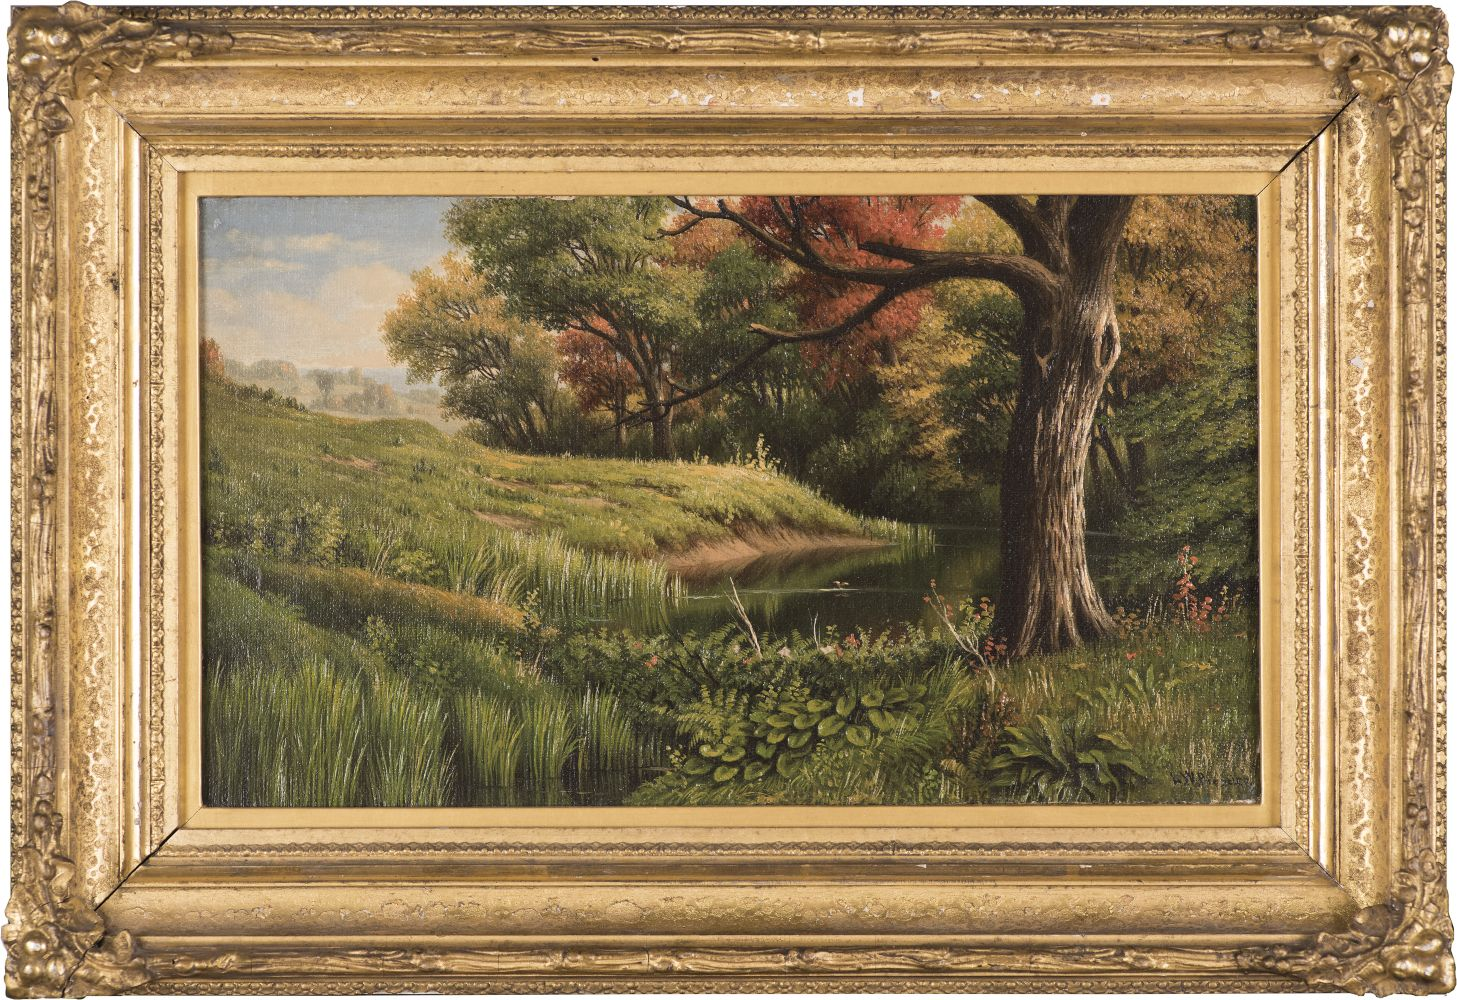 Levi Wells Prentice (1851–1935), An Early Autumn Landscape, 1886, oil on canvas, 7 1/2 x 13 in., signed and lower right: L. W. Prentice, inscribed on verso: L. W. Prentice / 1886 (framed)